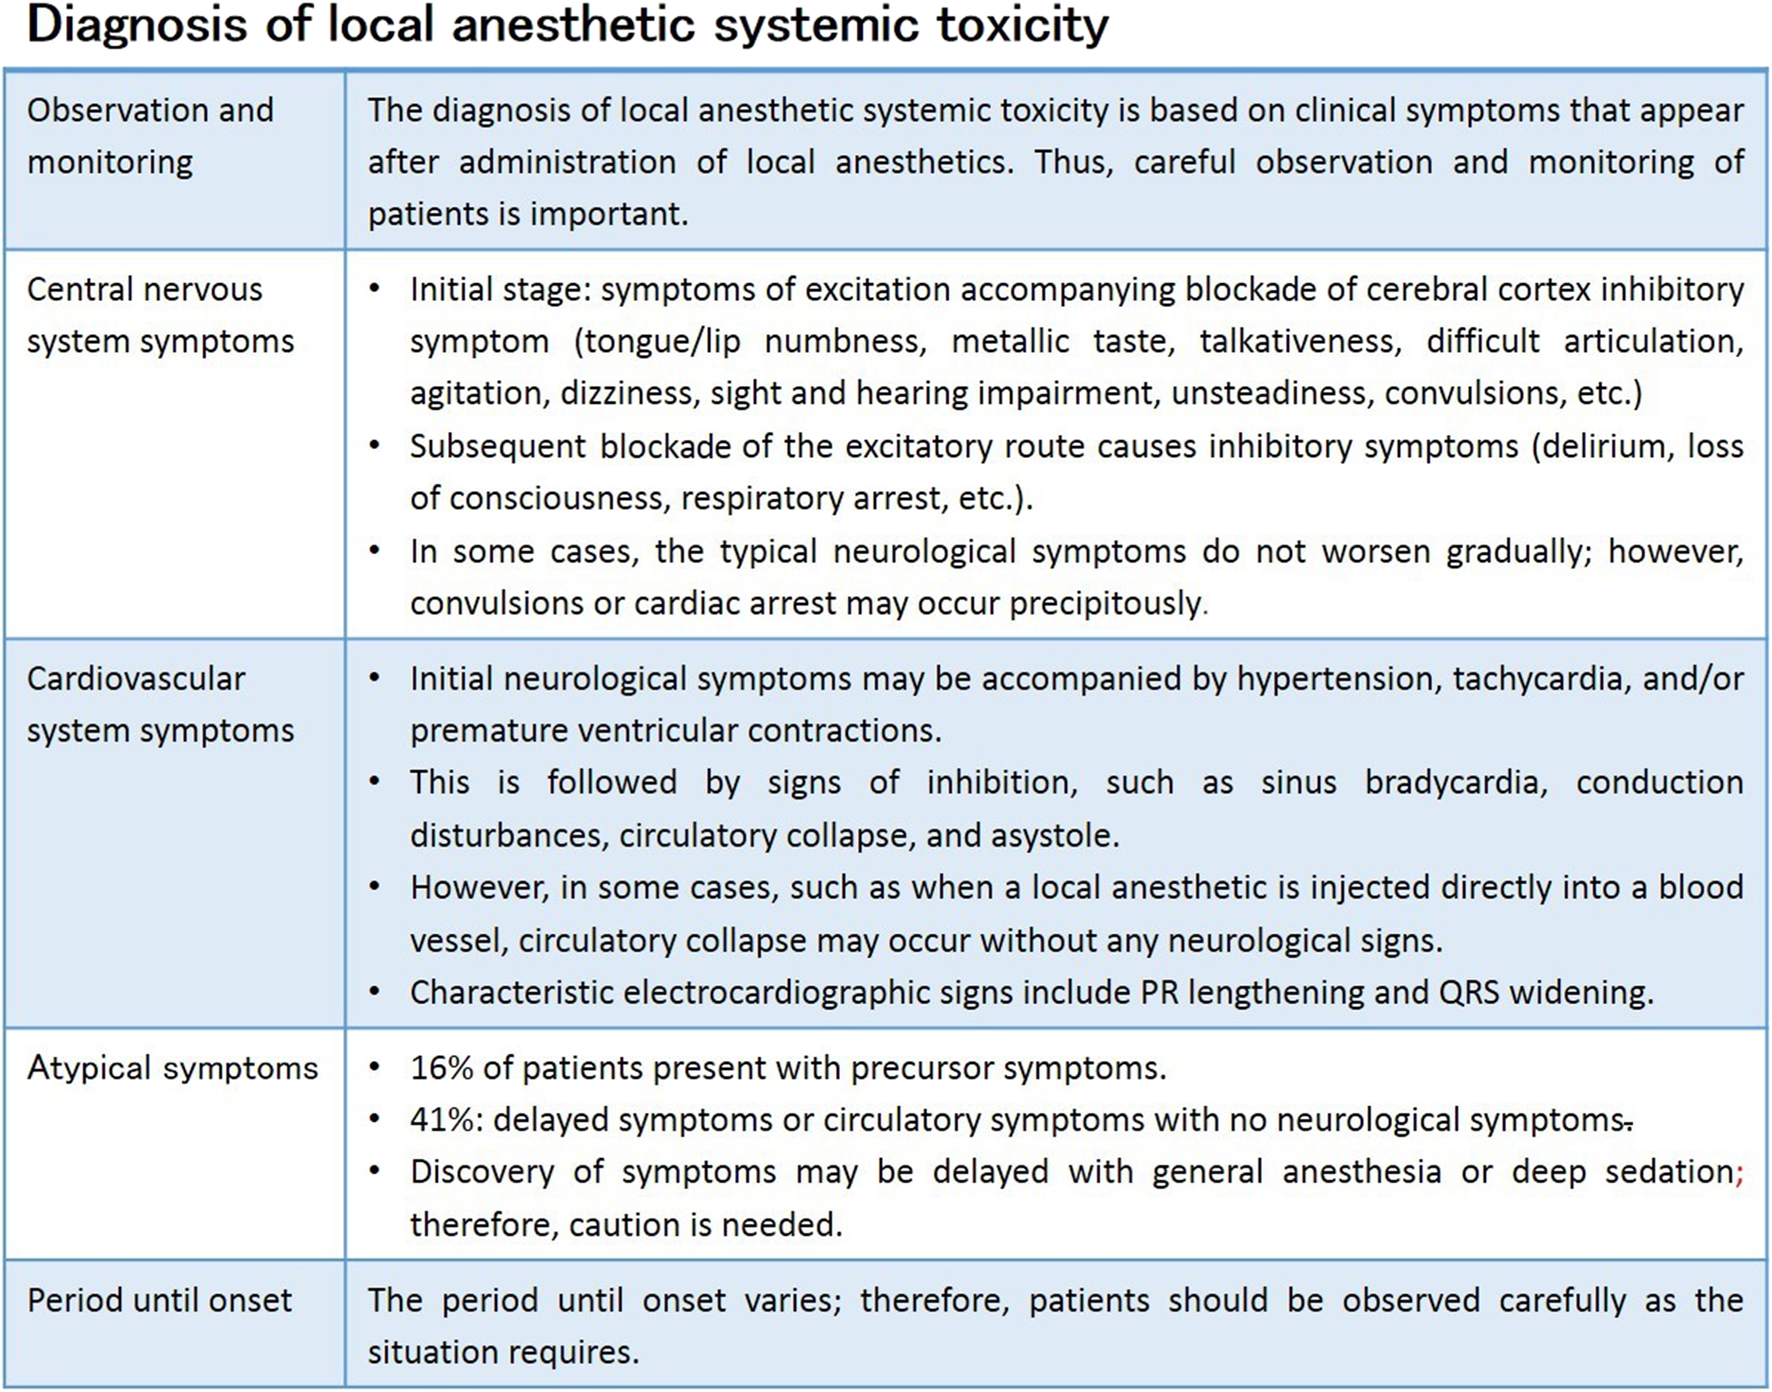 Practical guide for the management of systemic toxicity